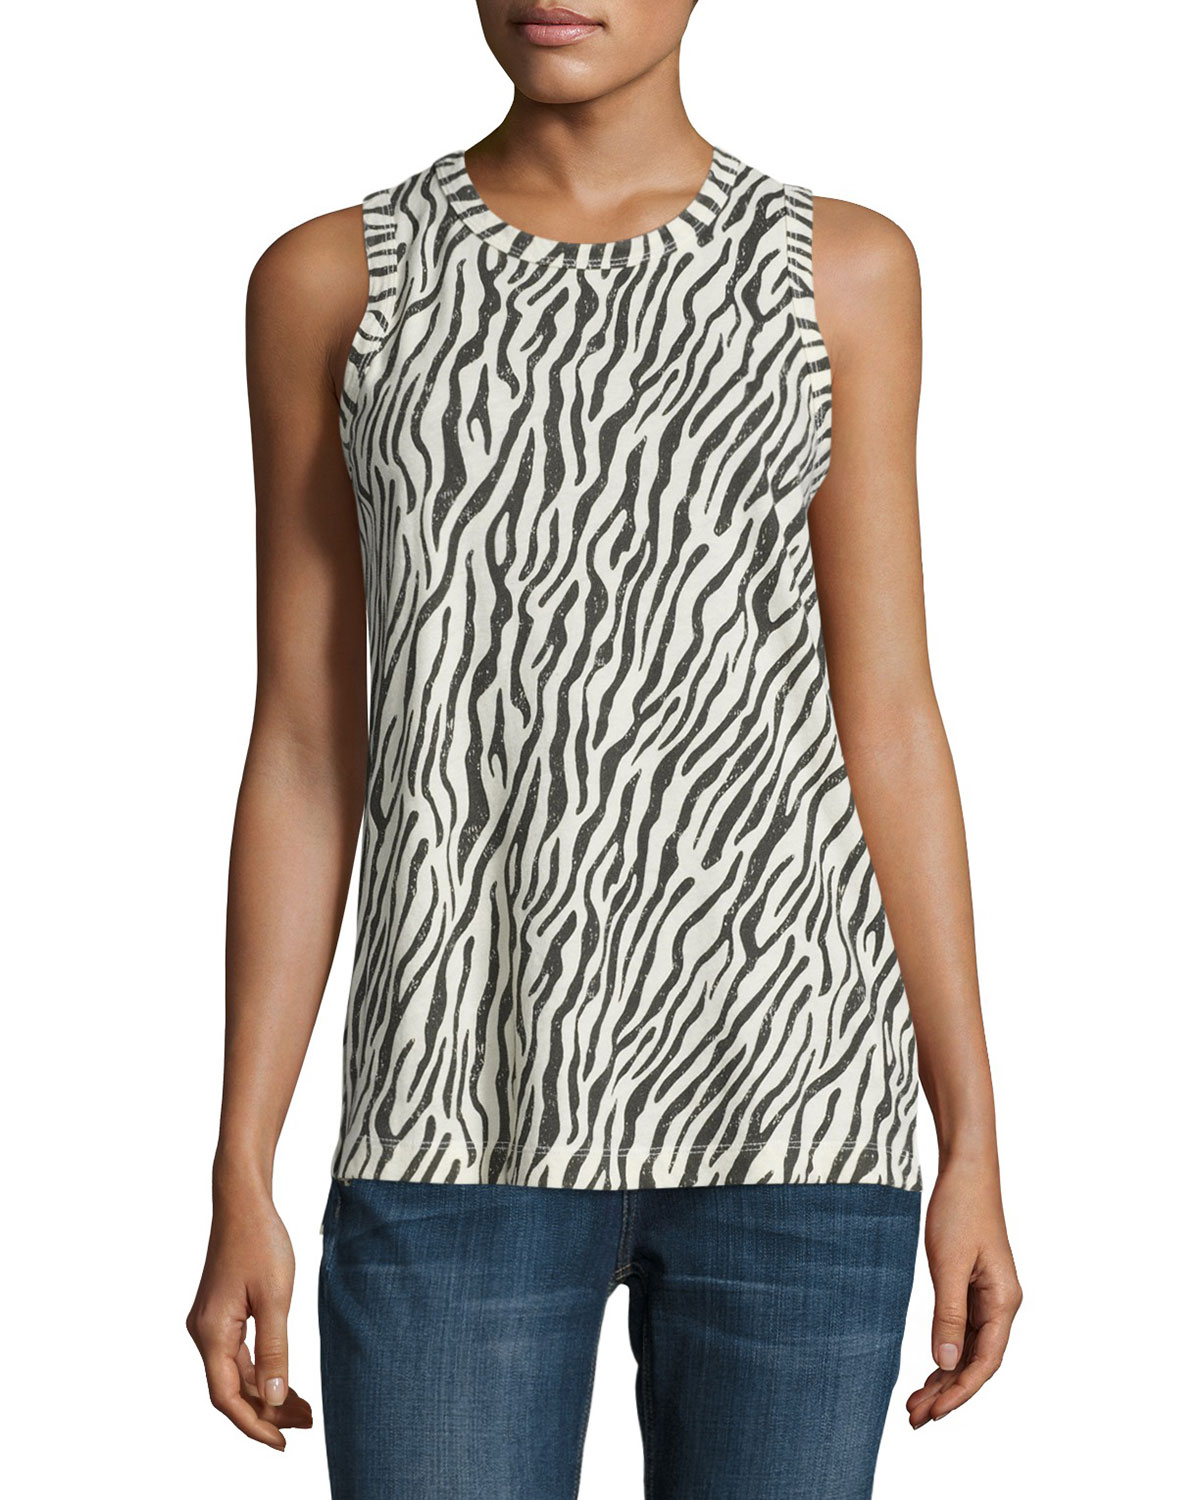 The Muscle Zebra-Print Tank, Dirty White